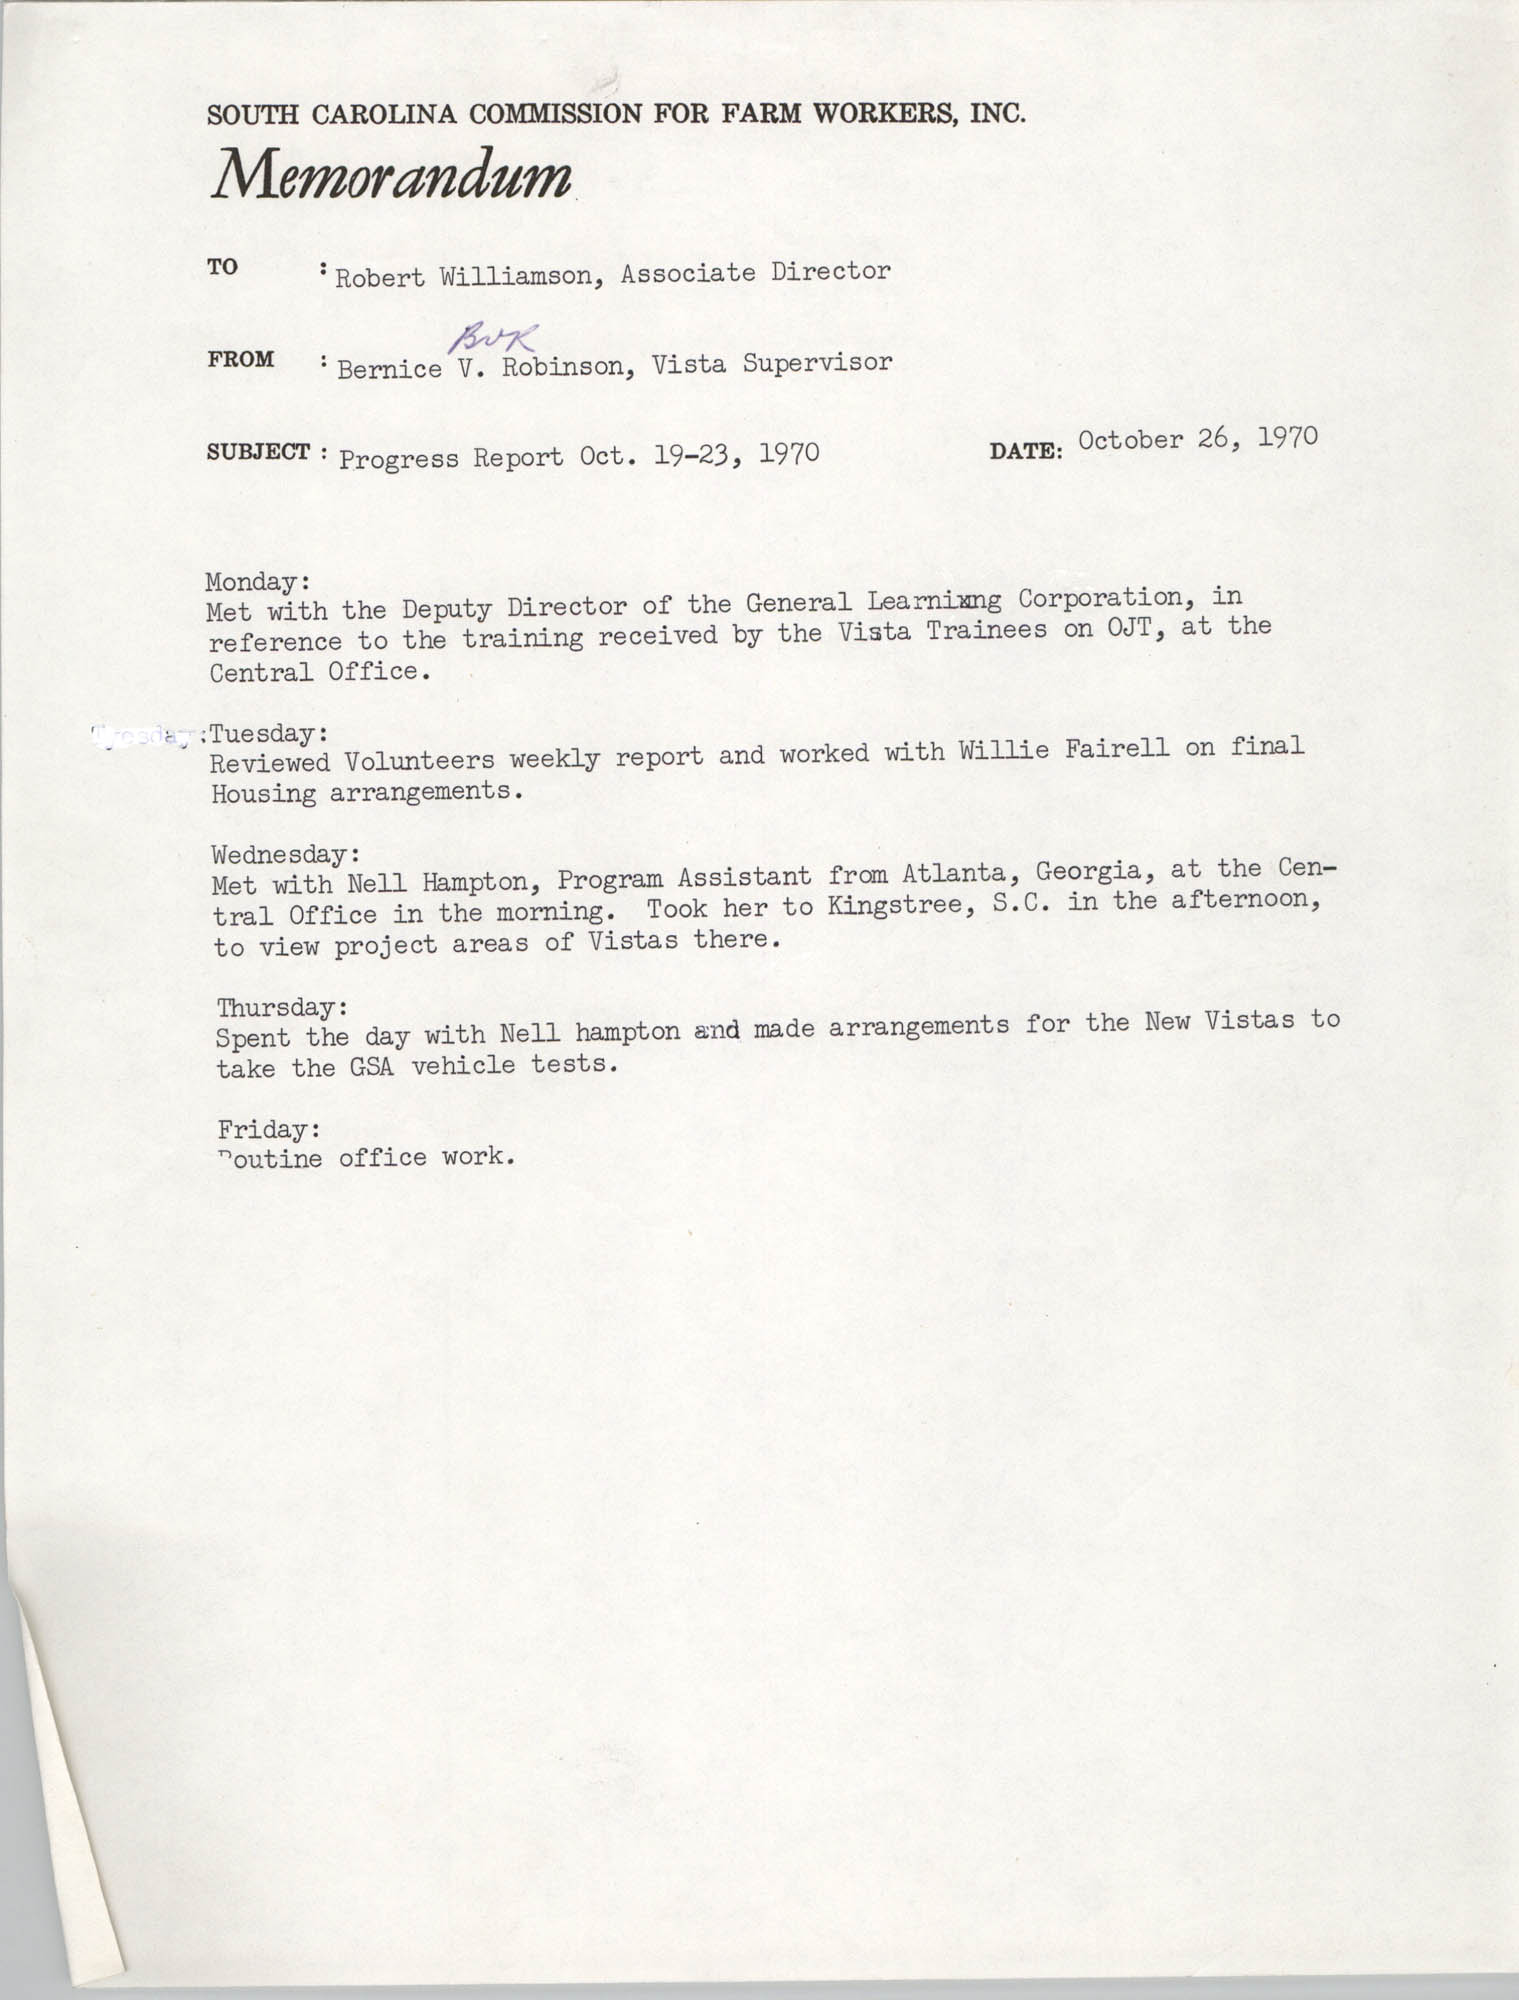 Memorandum from Bernice V. Robinson to Robert Williamson, October 26, 1970